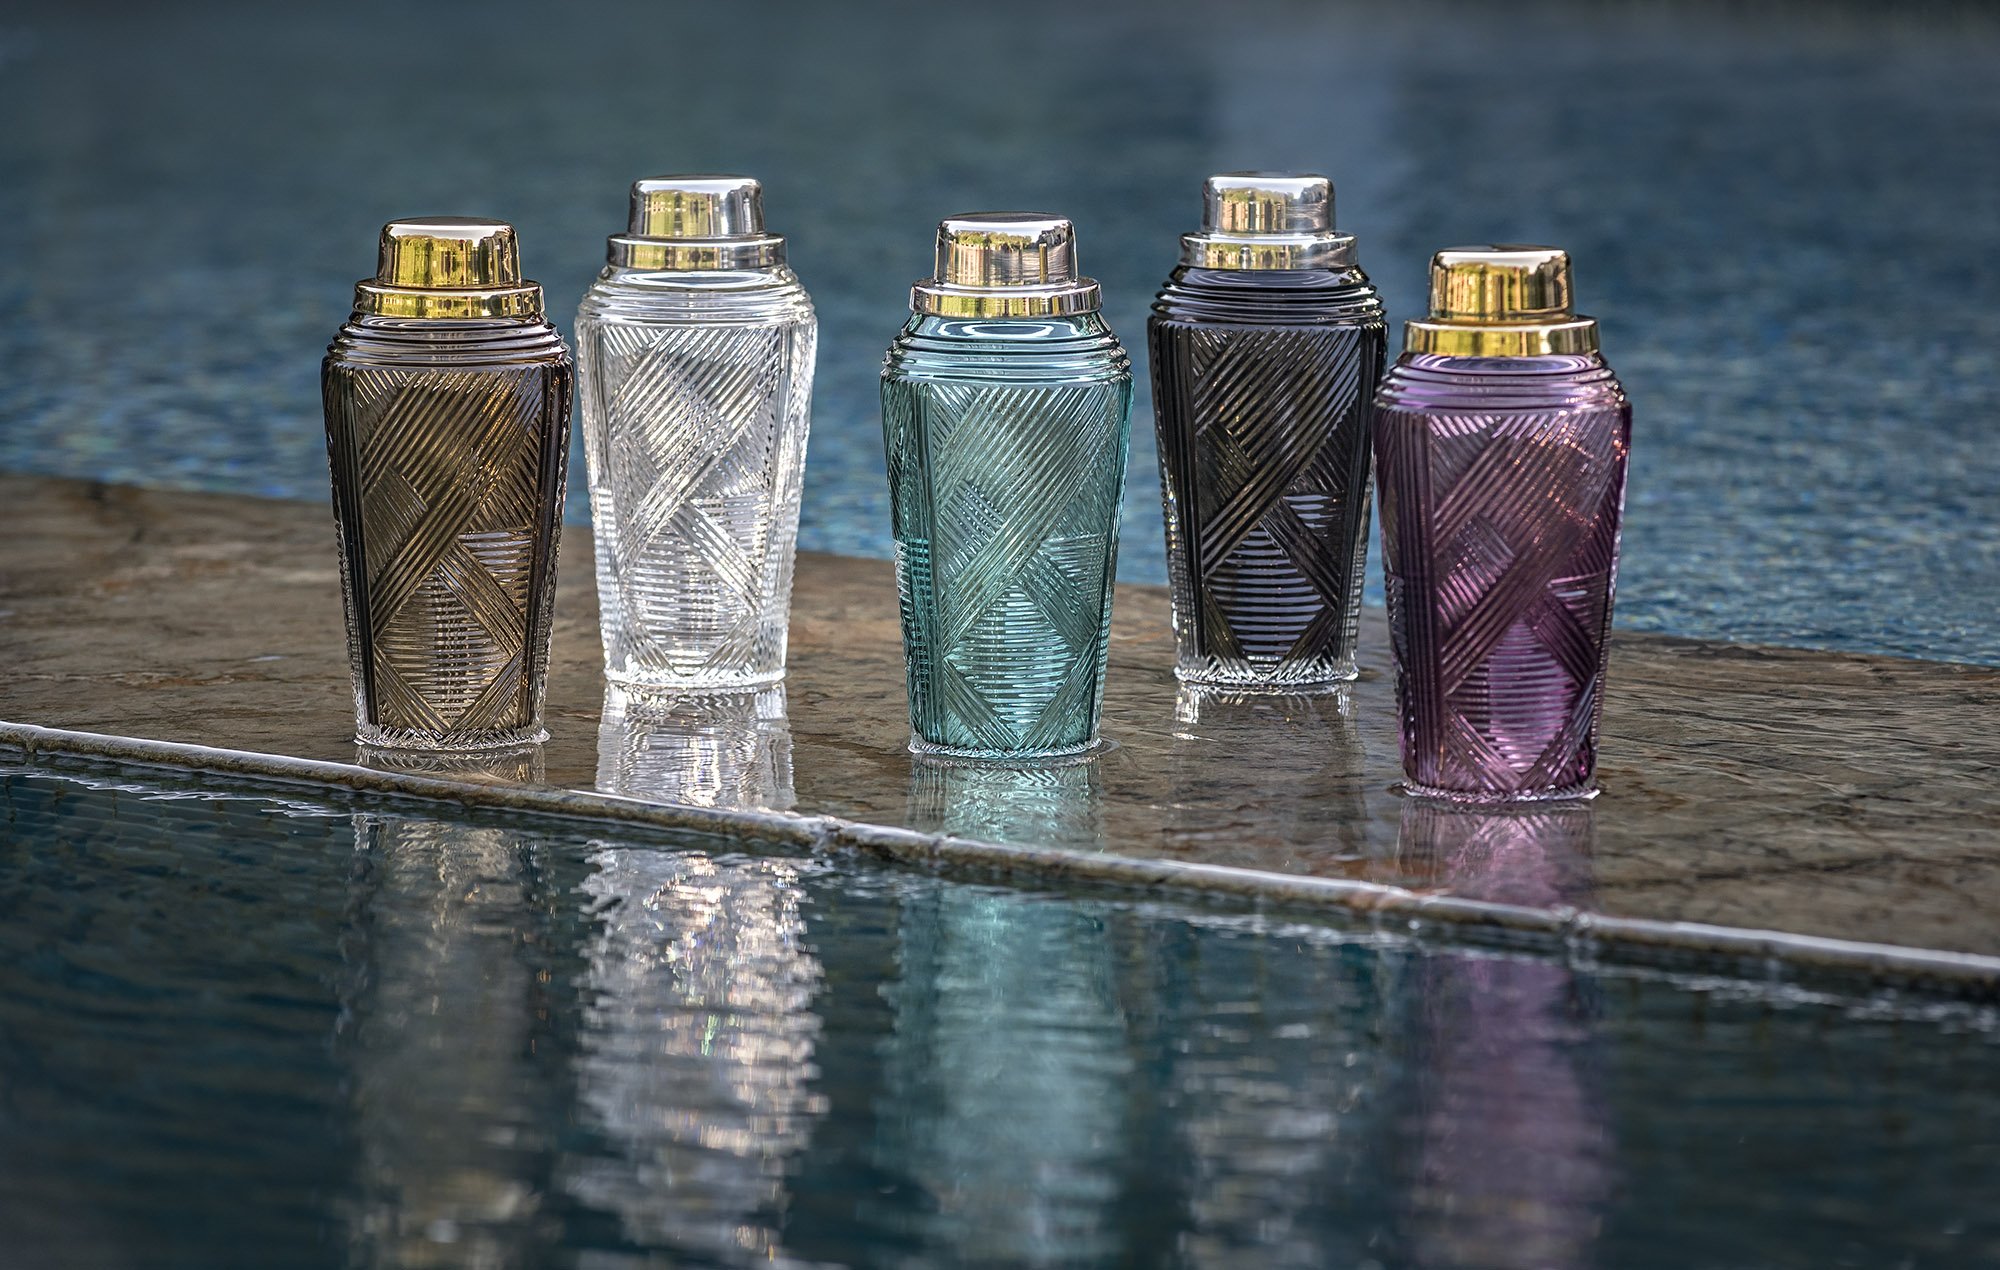 Columns cut shakers in smokey, clear, tourmaline, grey and amethyst